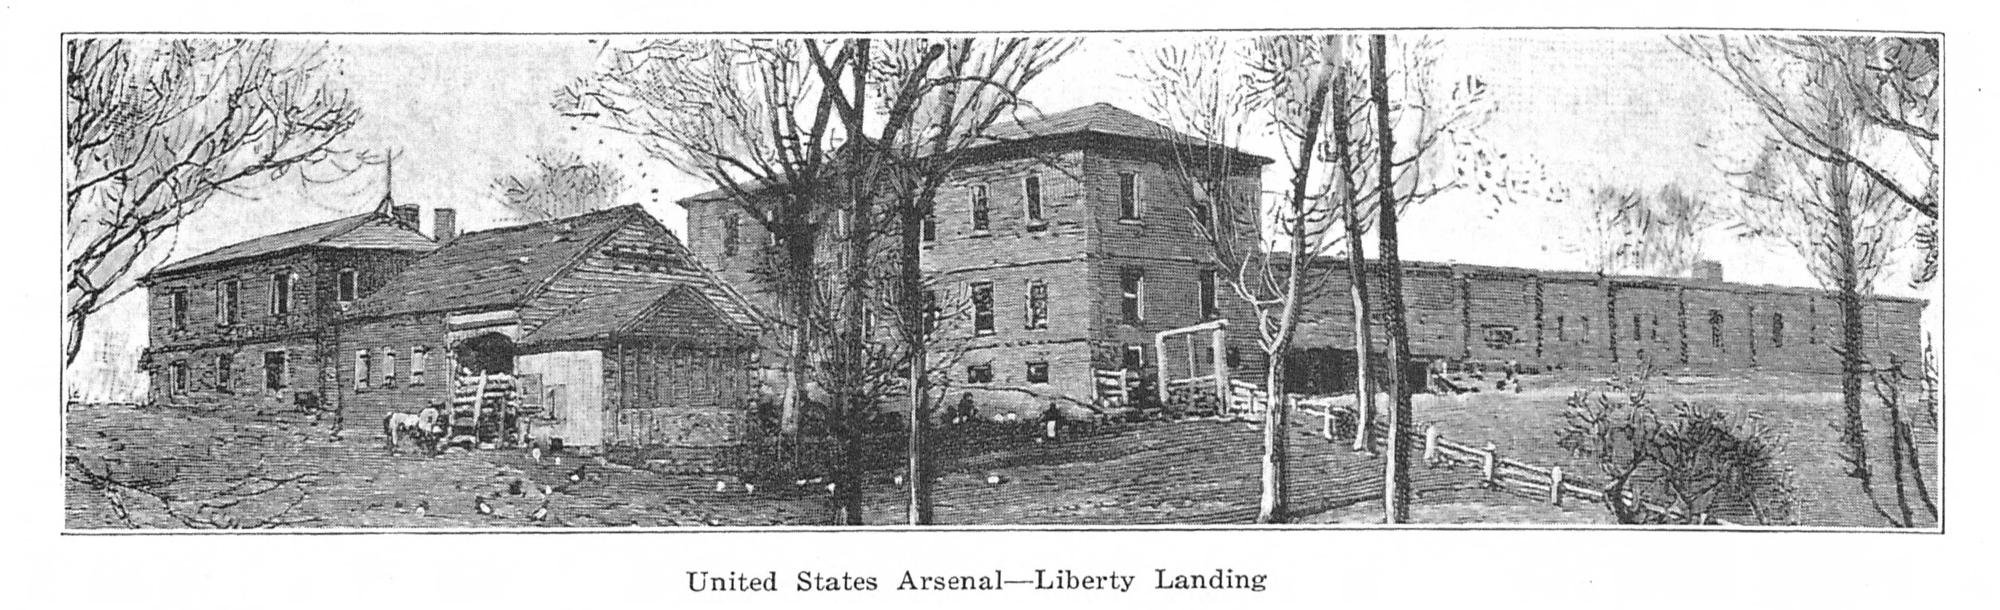 Liberty Arsenal in St. Louis